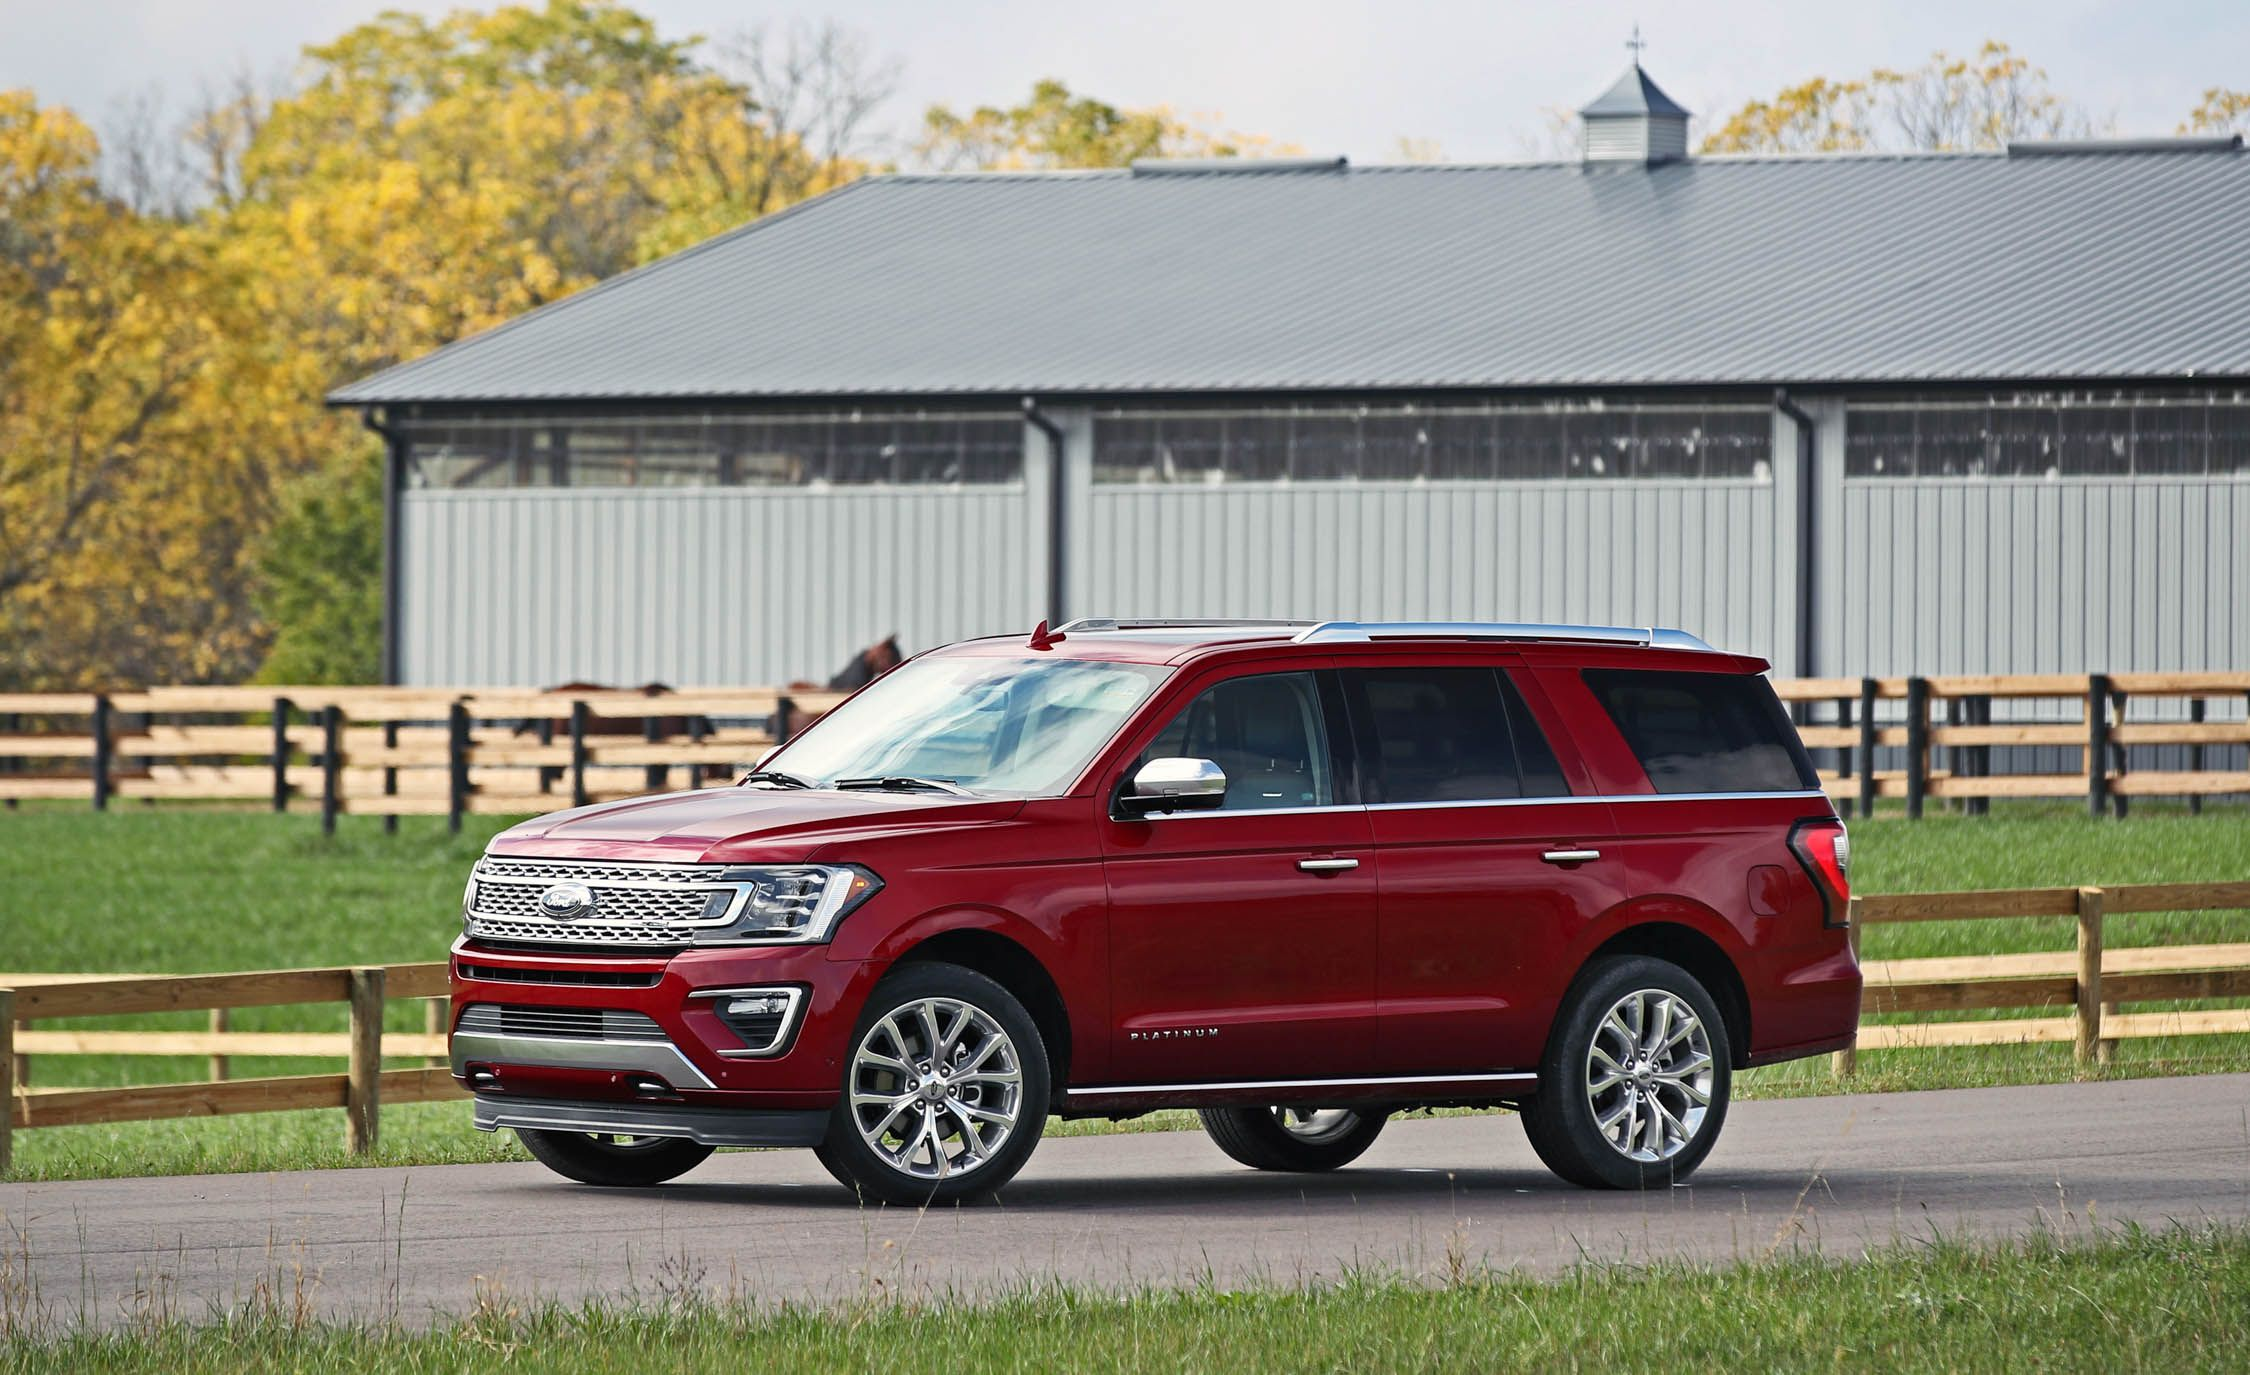 2018 ford expedition expedition max exterior design - Ford explorer exterior dimensions ...